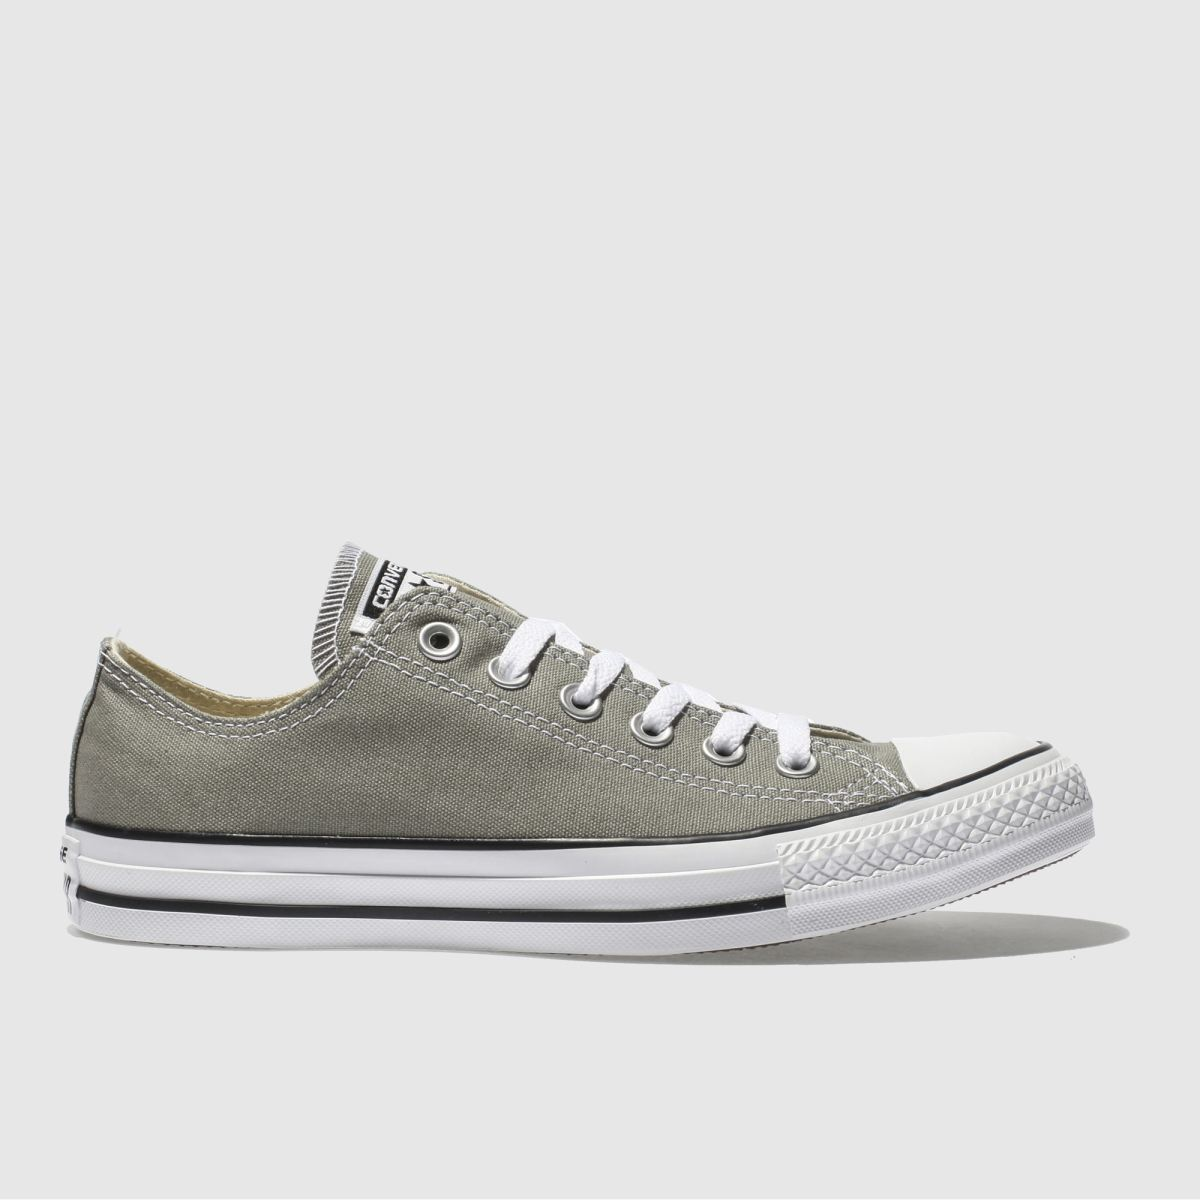 Converse Khaki All Star Mineral Shades Ox Trainers